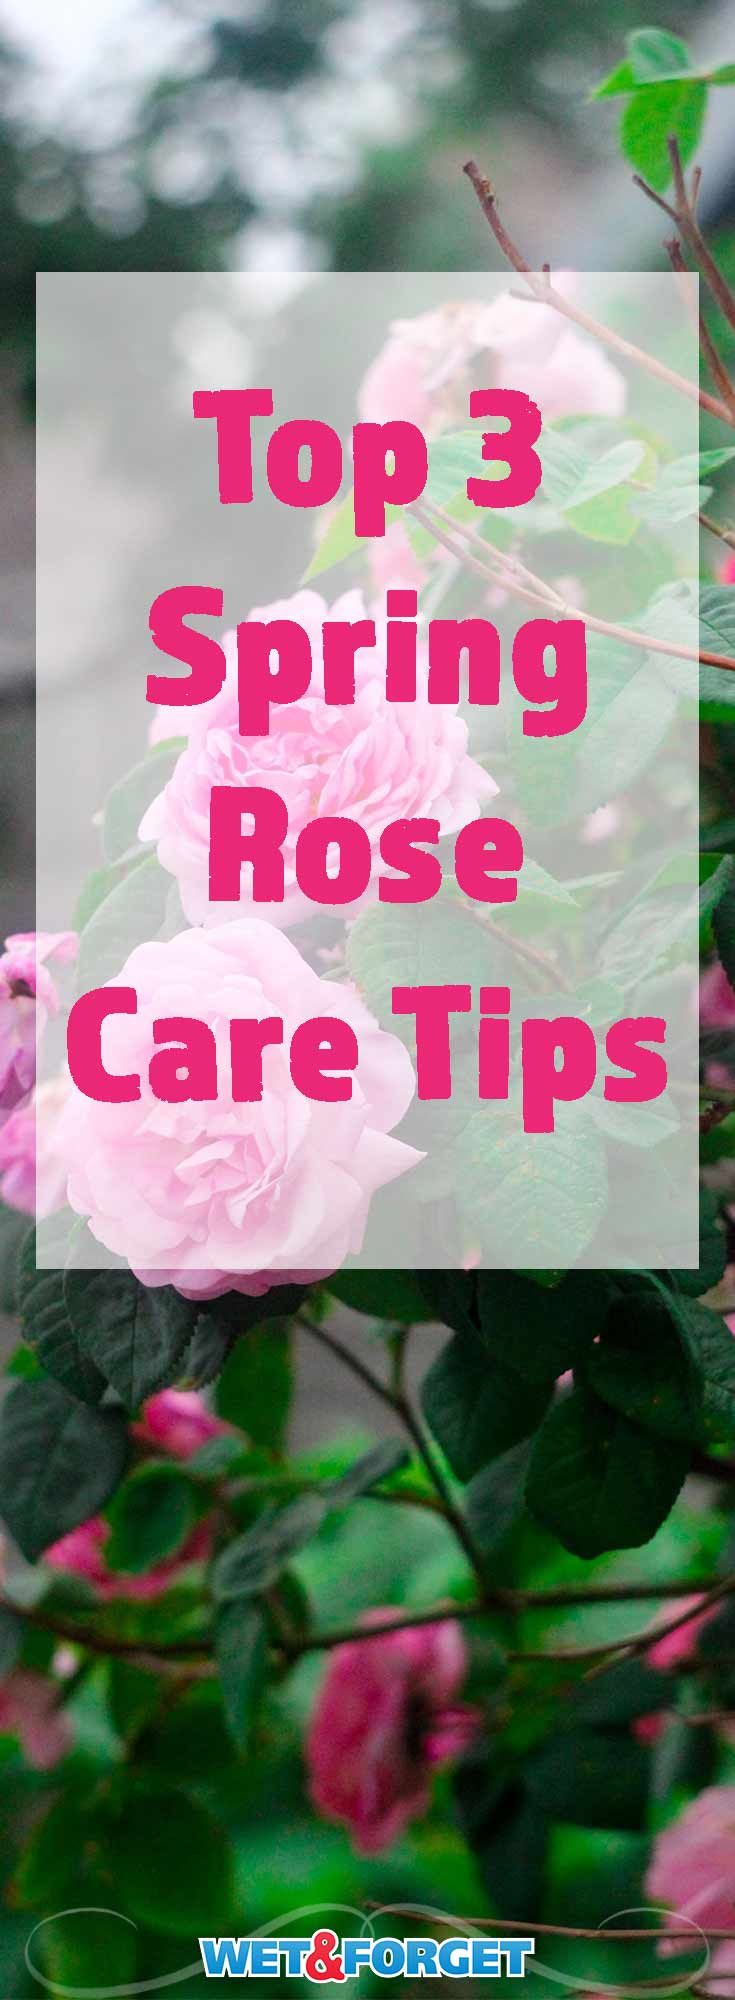 Roses come in many different varieties and need different care to keep them at their best. Read up on the top spring rose care tips!